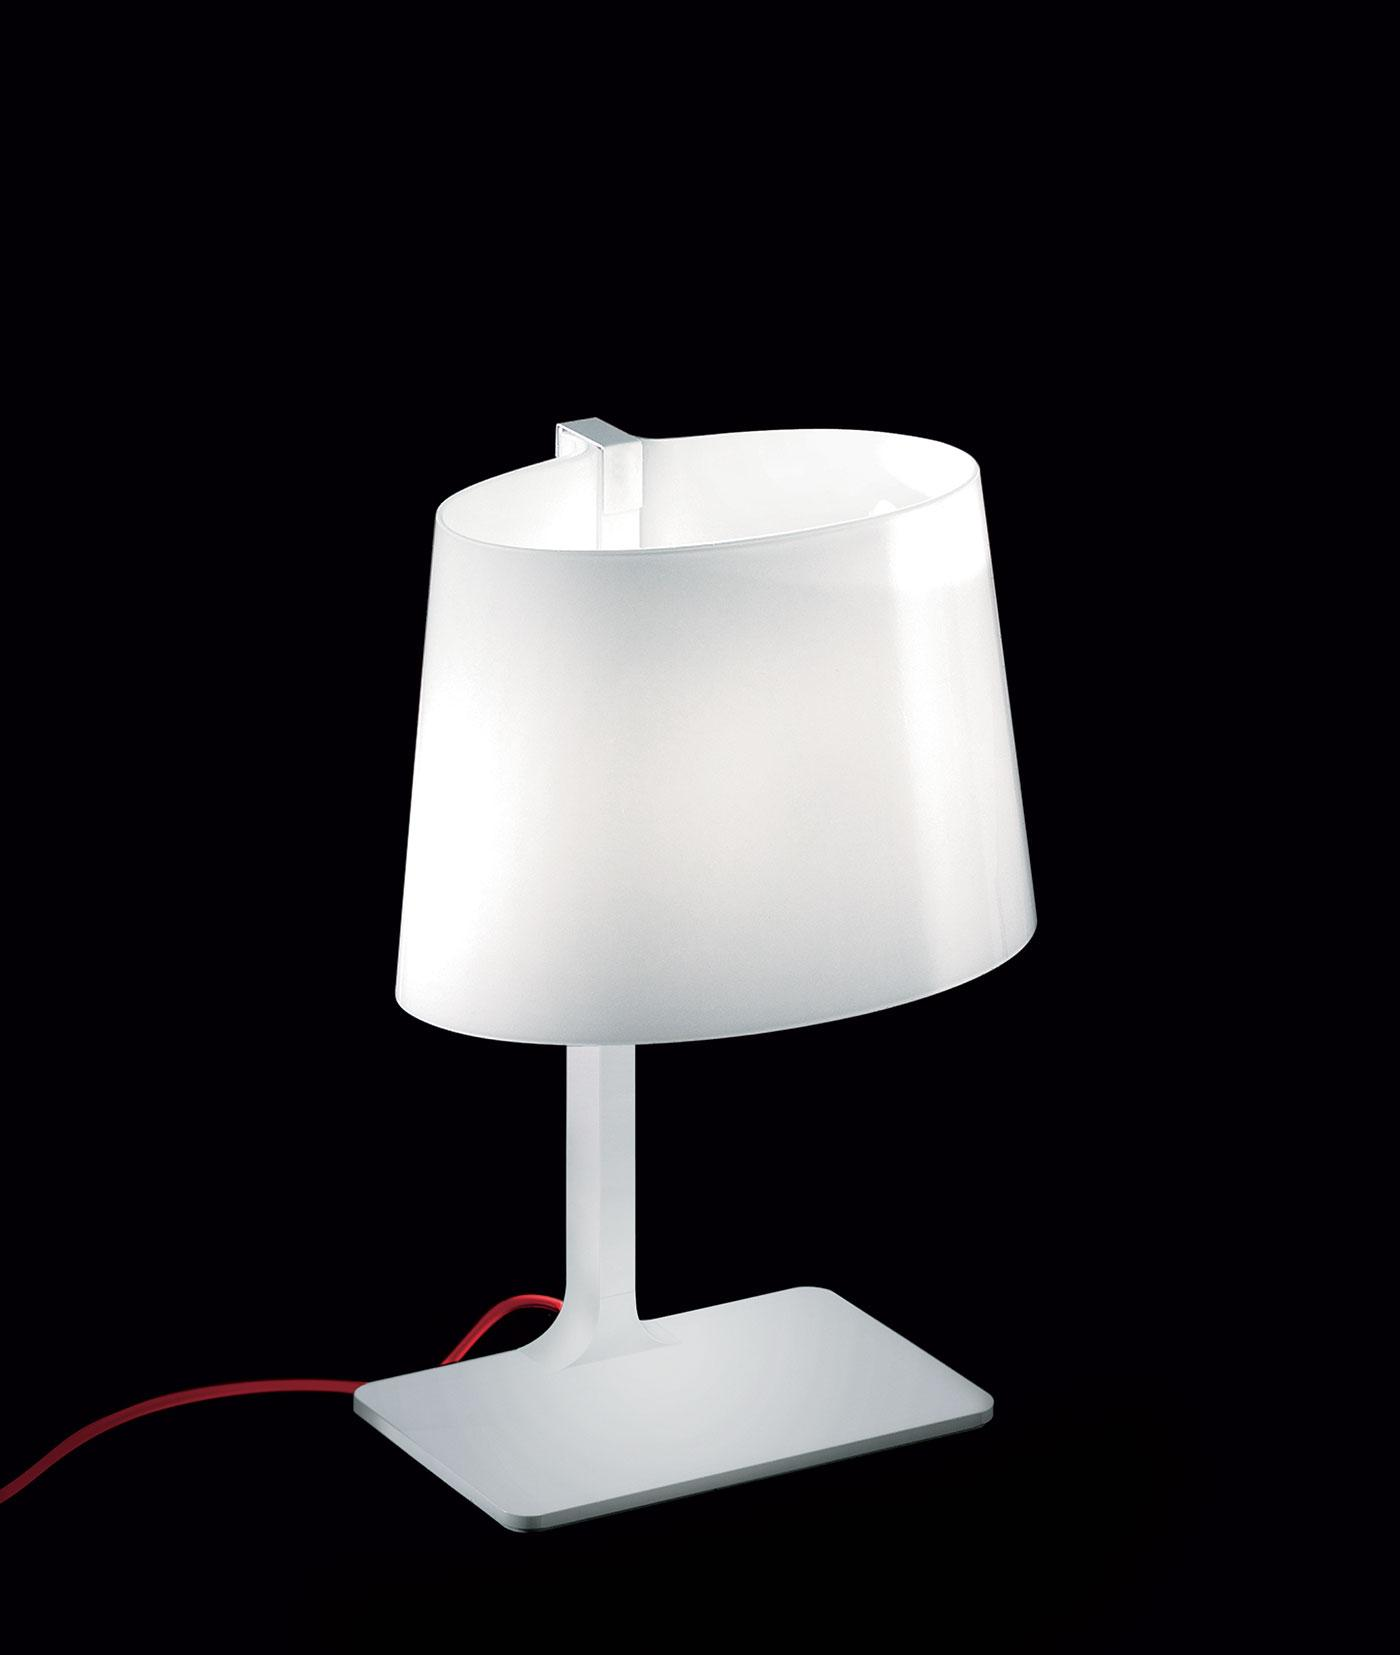 Marlowe luxury white hand blown glass table lamp shop online luxury glass table lamp murano glass white design post dimmer post made in italy light online aloadofball Image collections